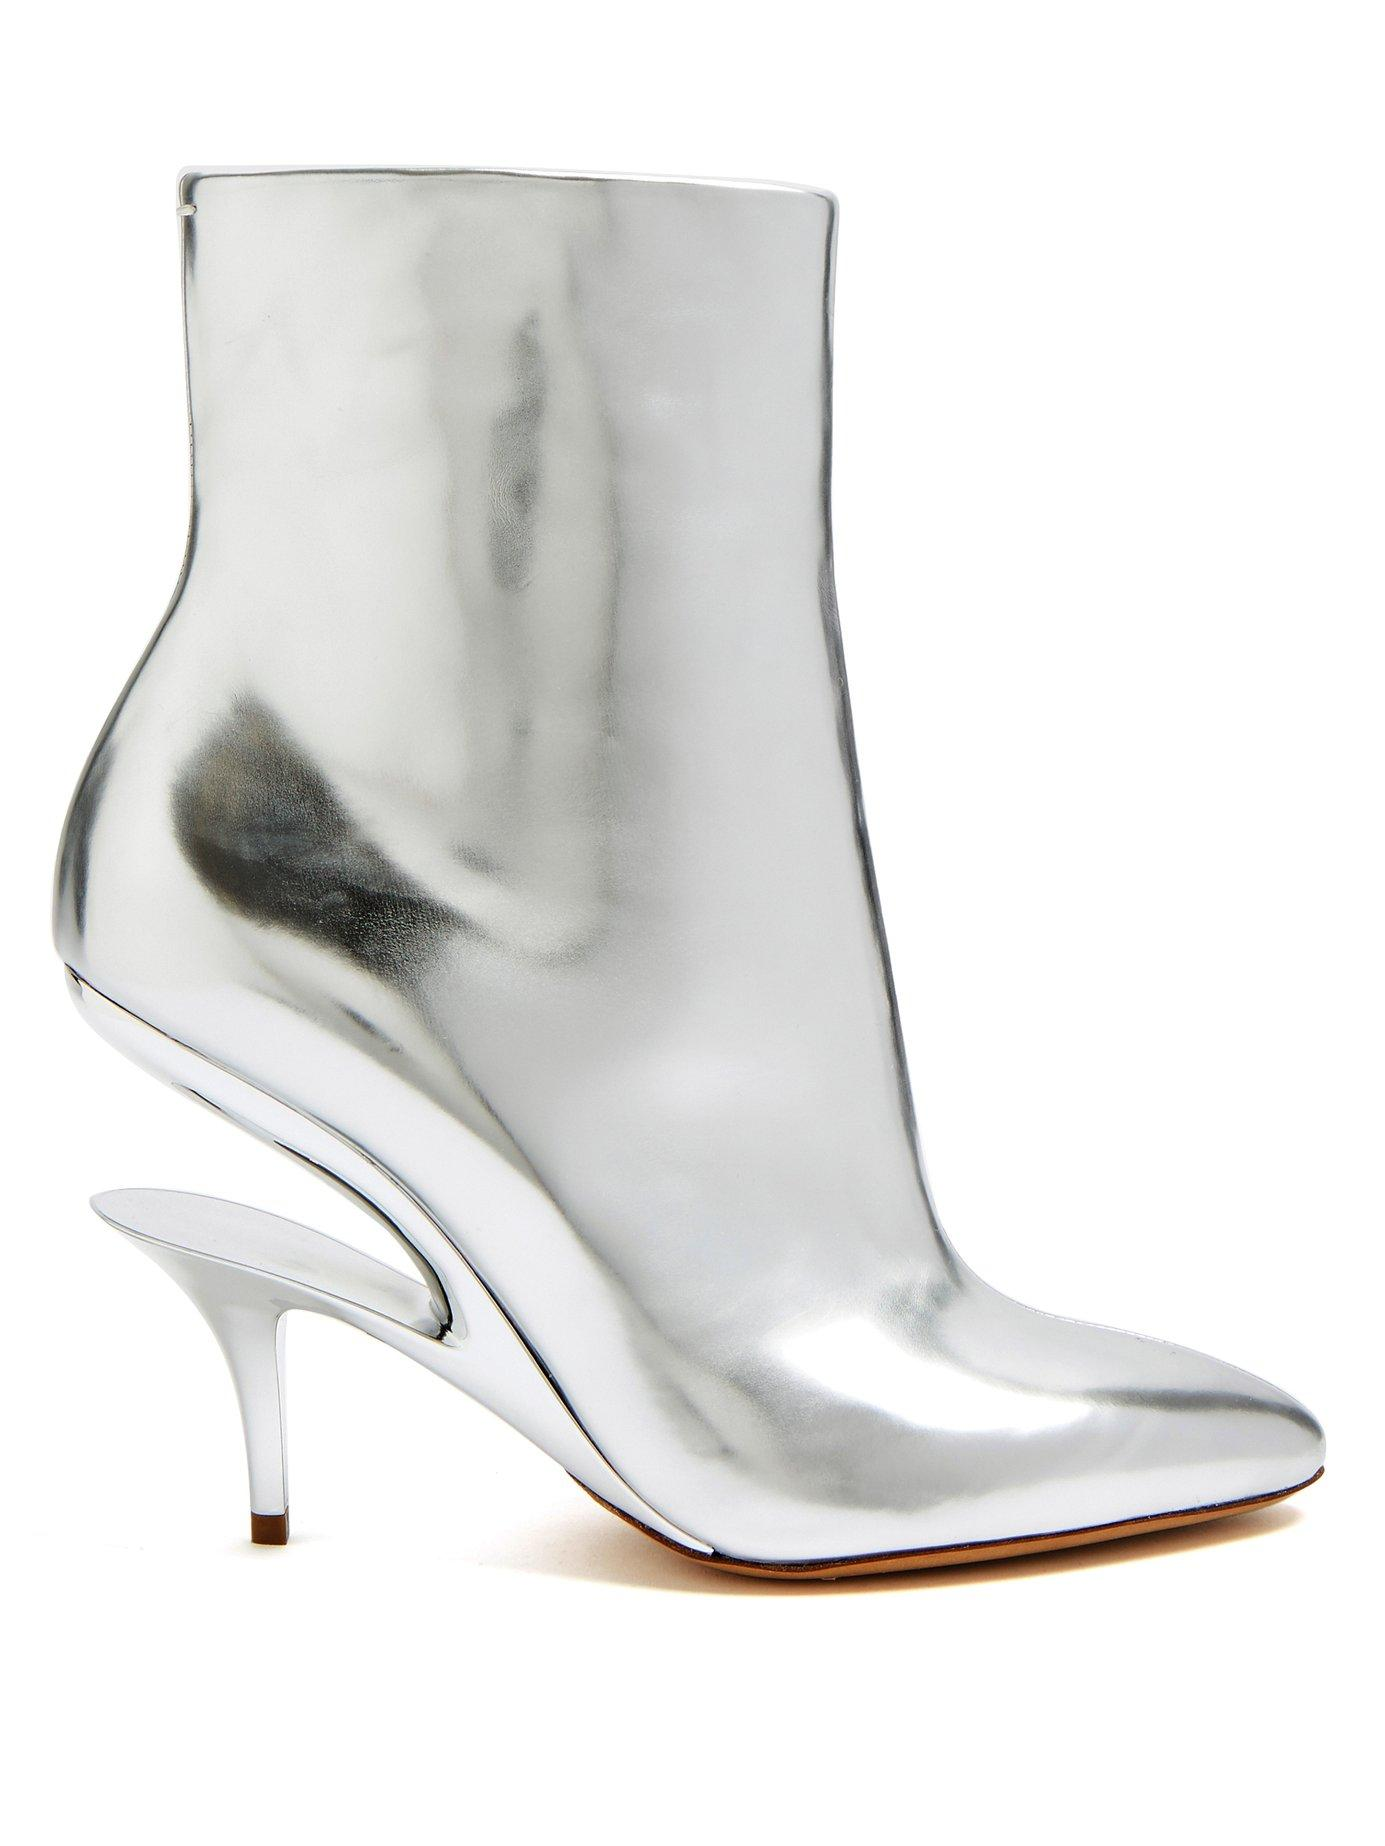 Maison Margiela Suspended-Heel Leather Ankle Boots In Metallic-Silver